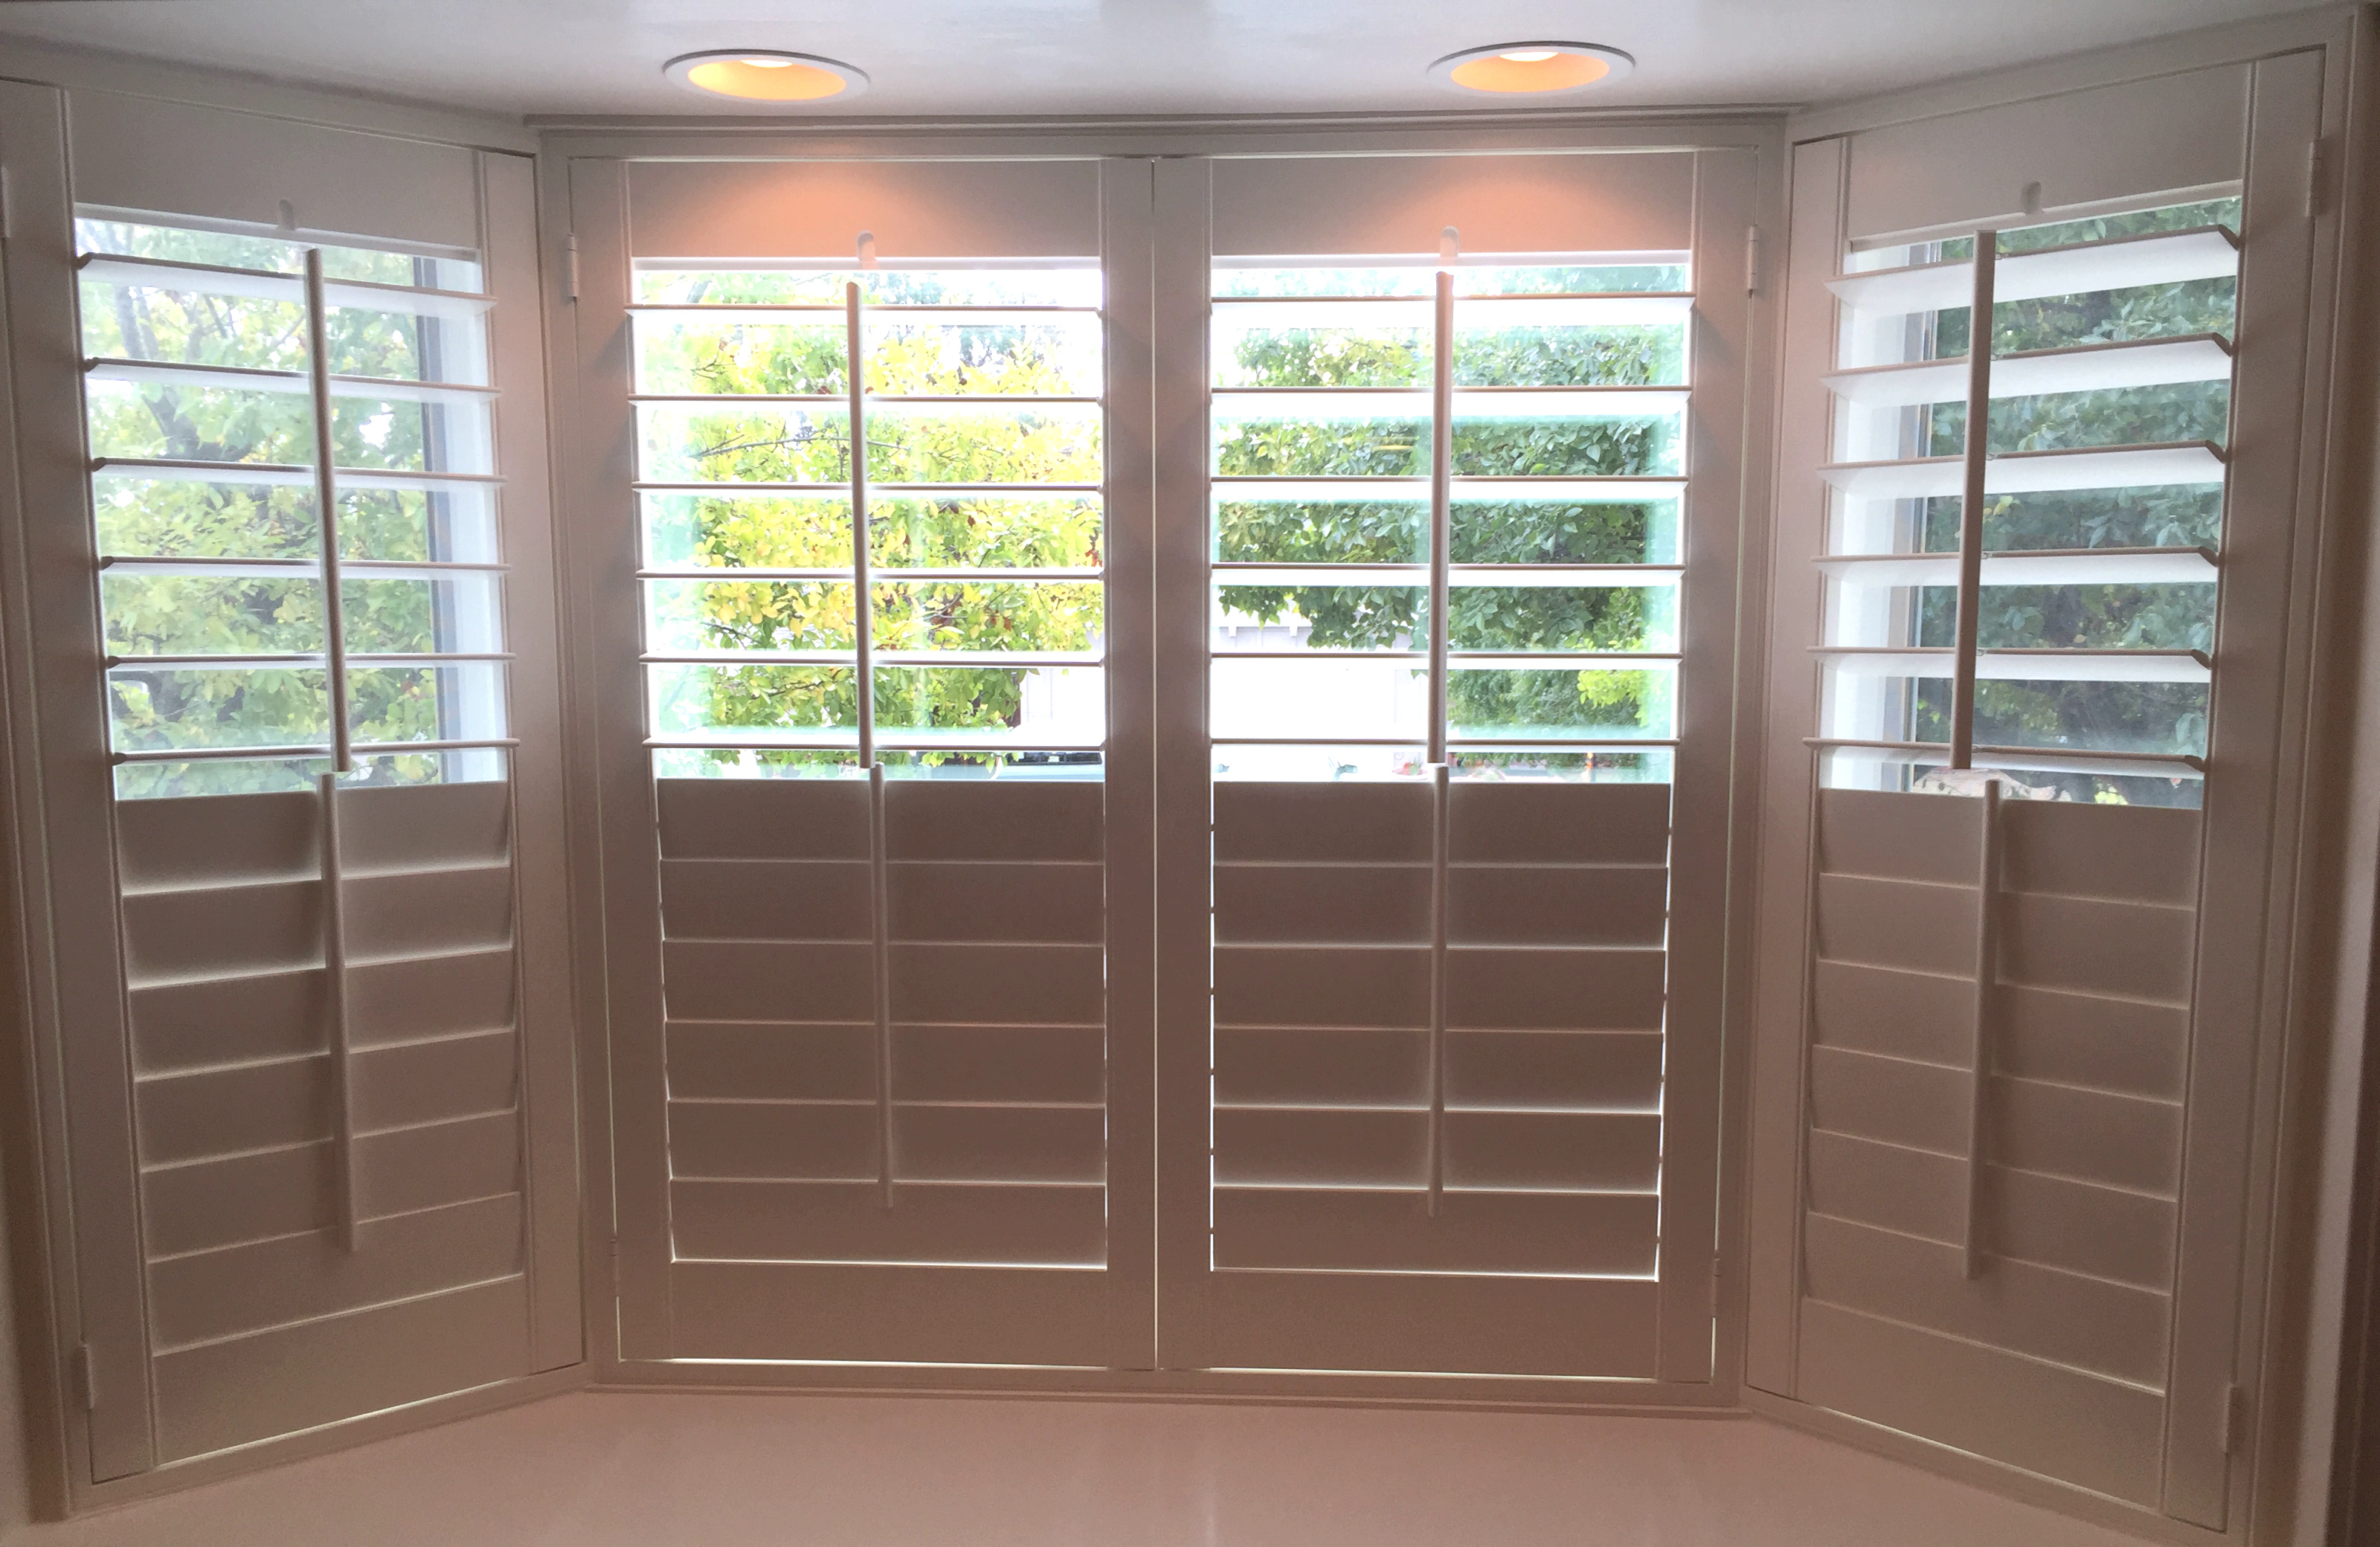 Our Shutters Advanced Custom Shutters Inc